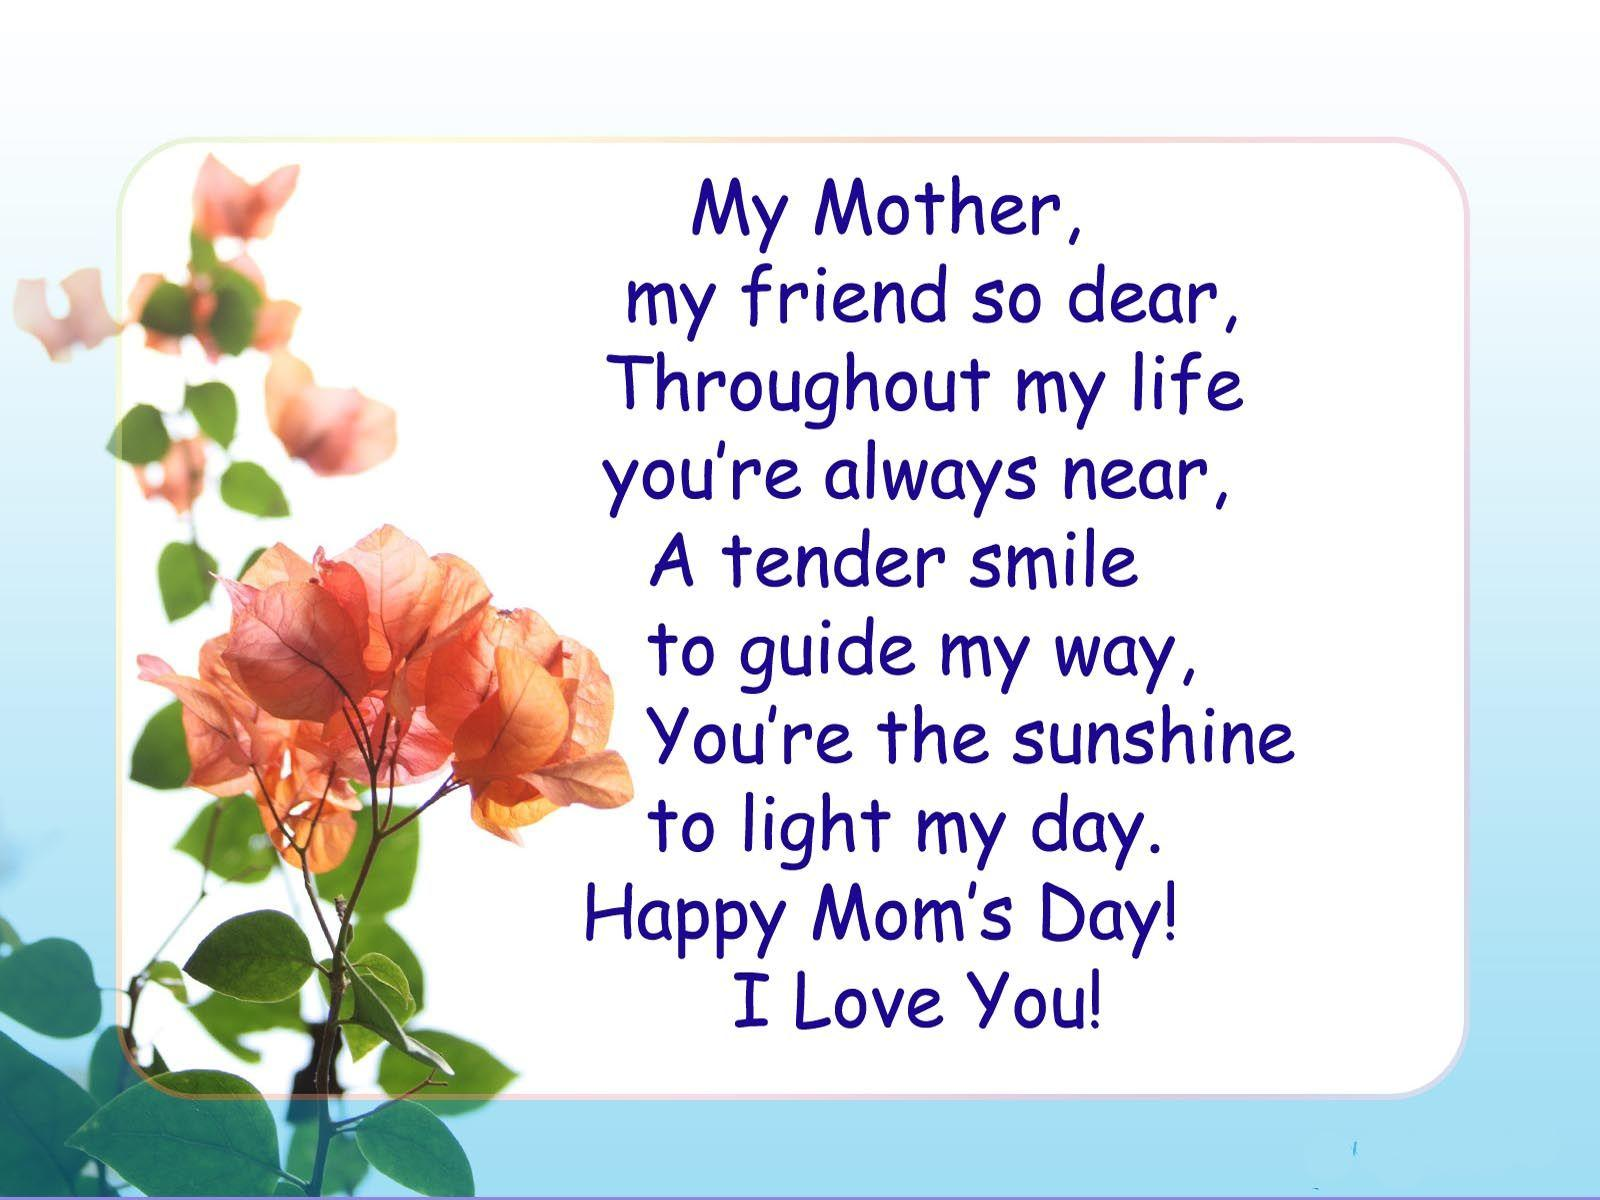 Top 5 Mother's Day Wallpapers Poems 2017 - | Mother's Day